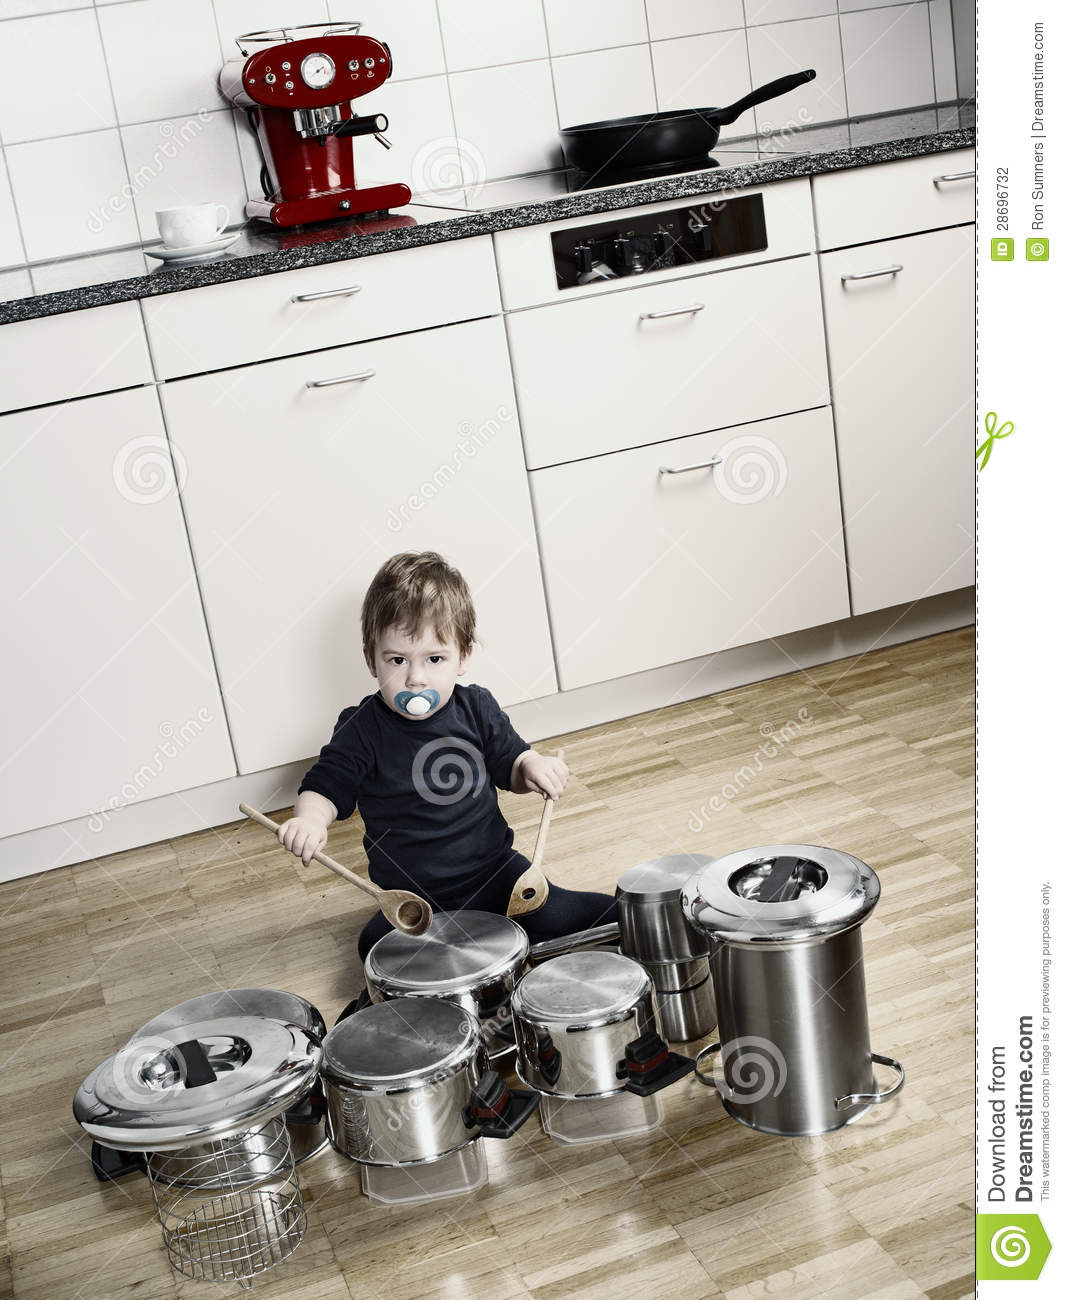 Playing Drums With Pots And Pans Stock Photography Image